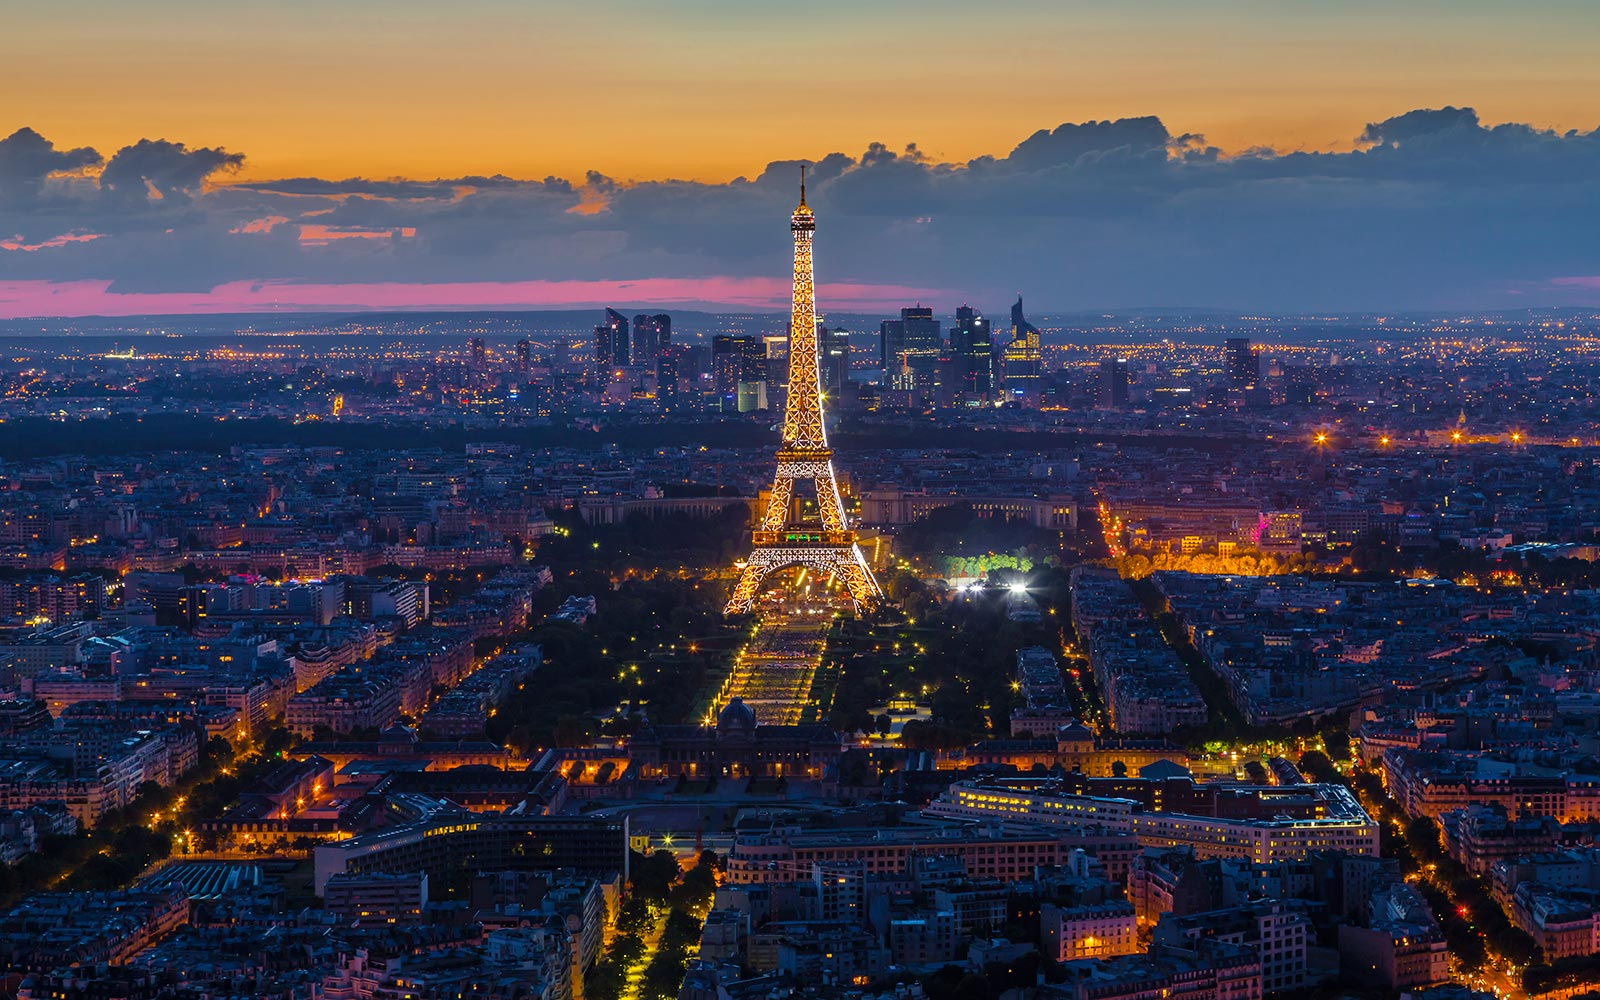 Eiffel Tower Landmark Paris France Aerial